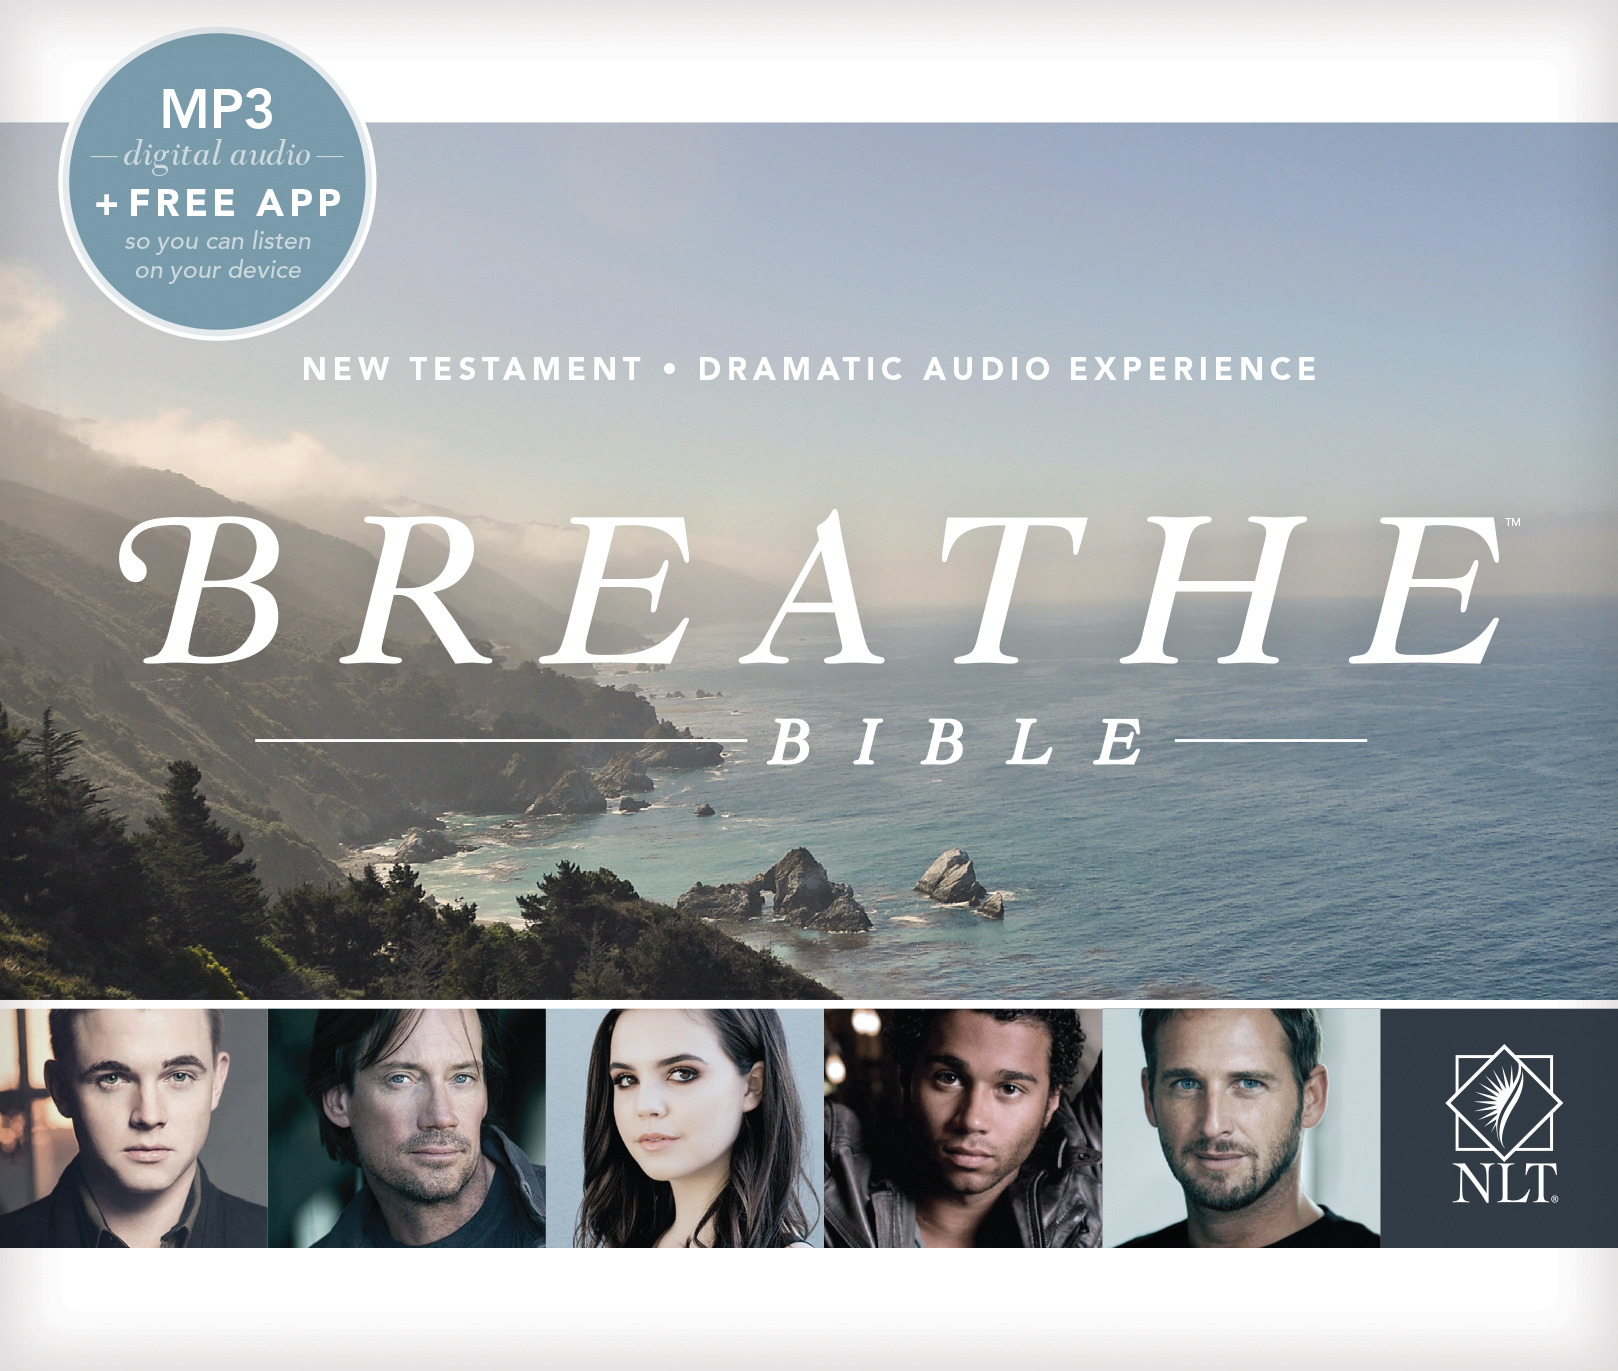 Breathe Bible New Testament NLT MP3, MP3 (Audio CD)